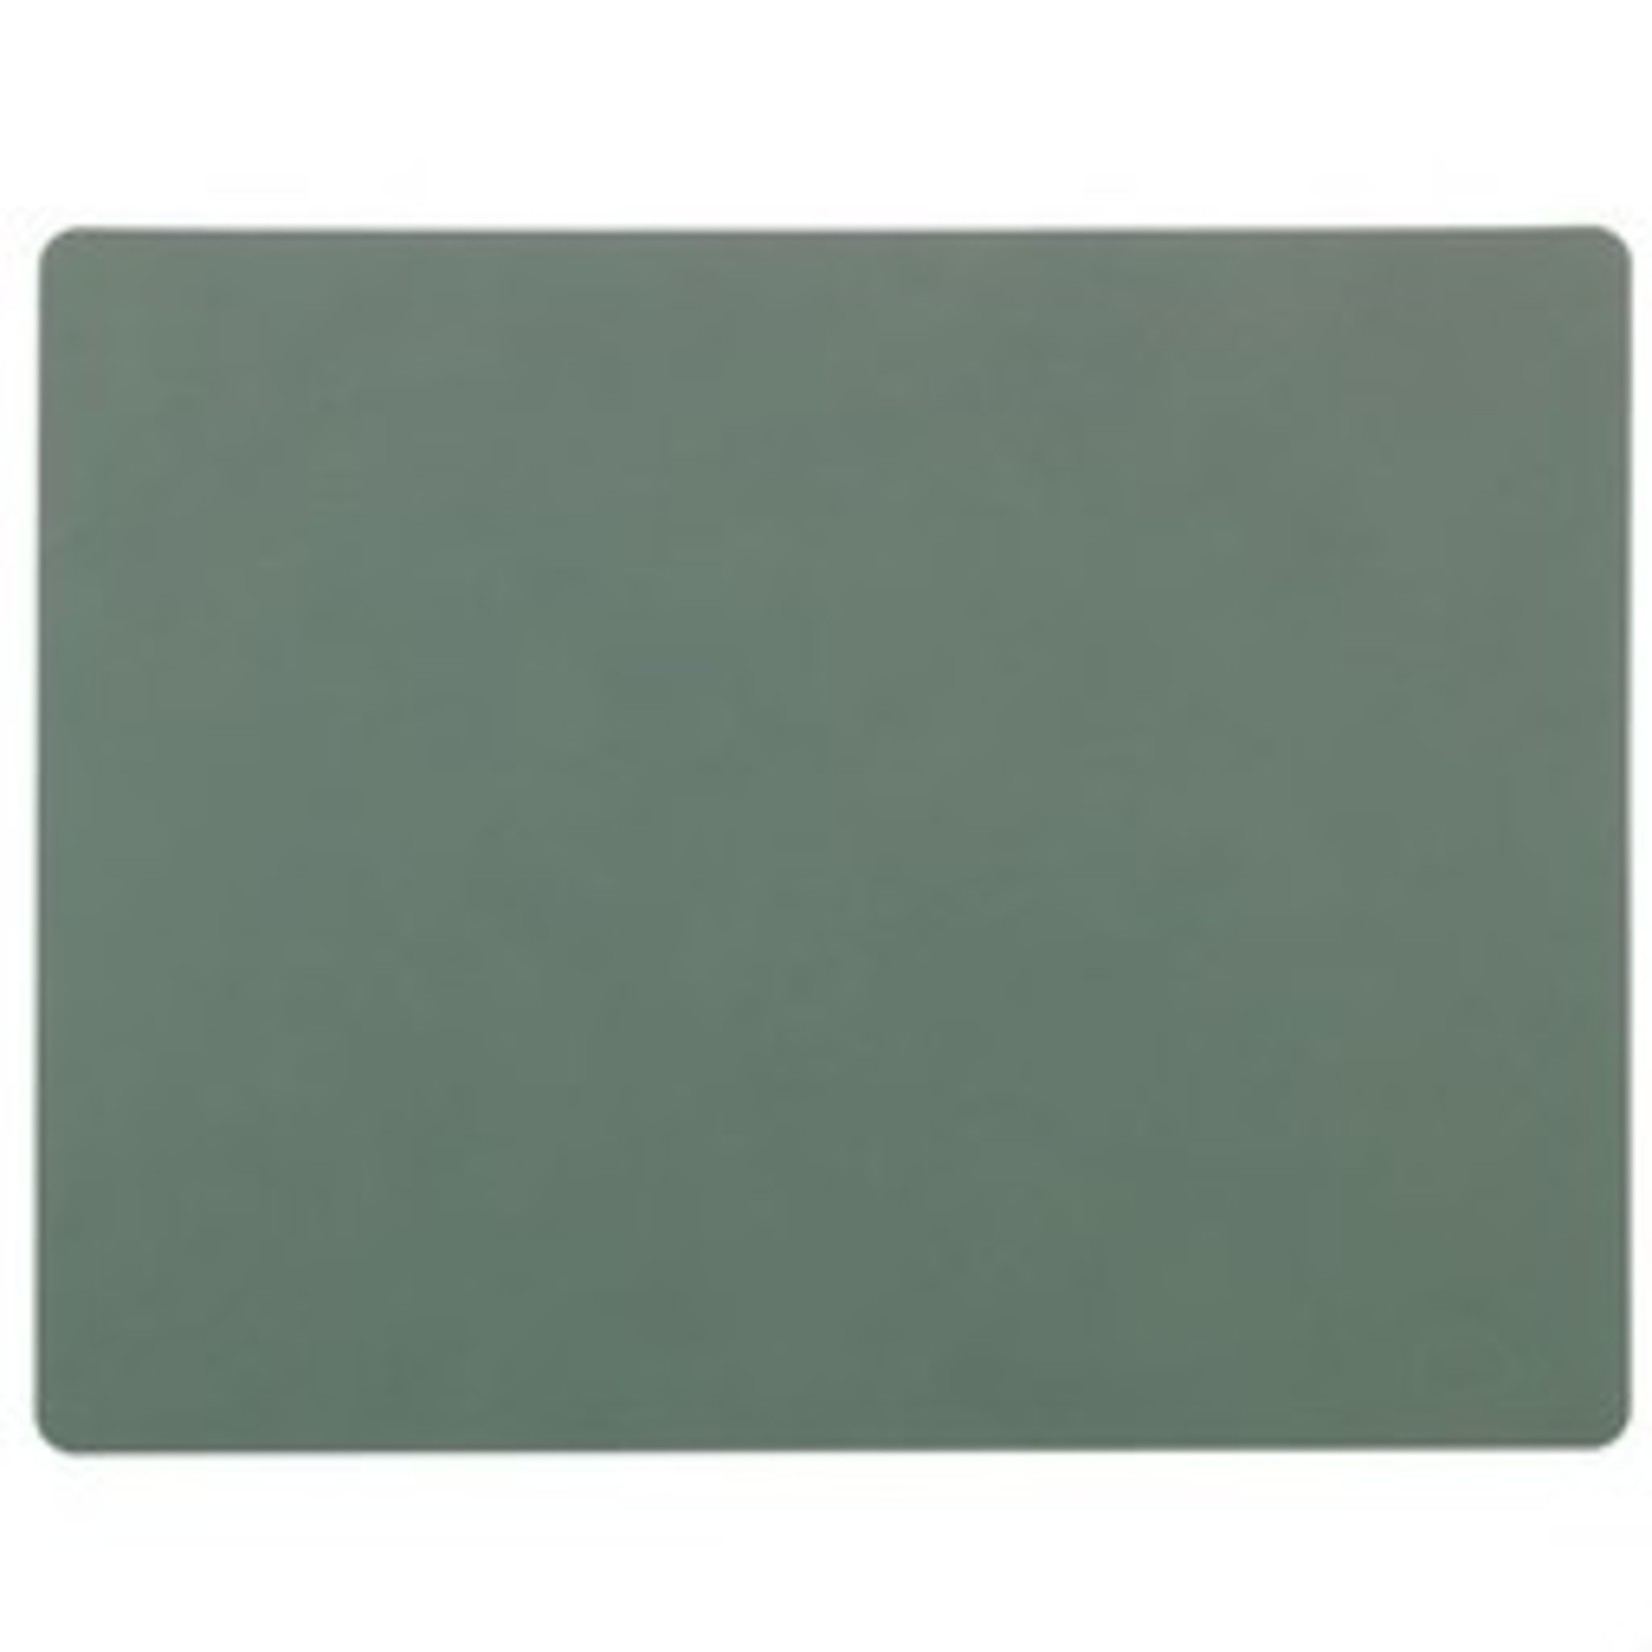 Lind DNA Placemat Nupo - pastel groen